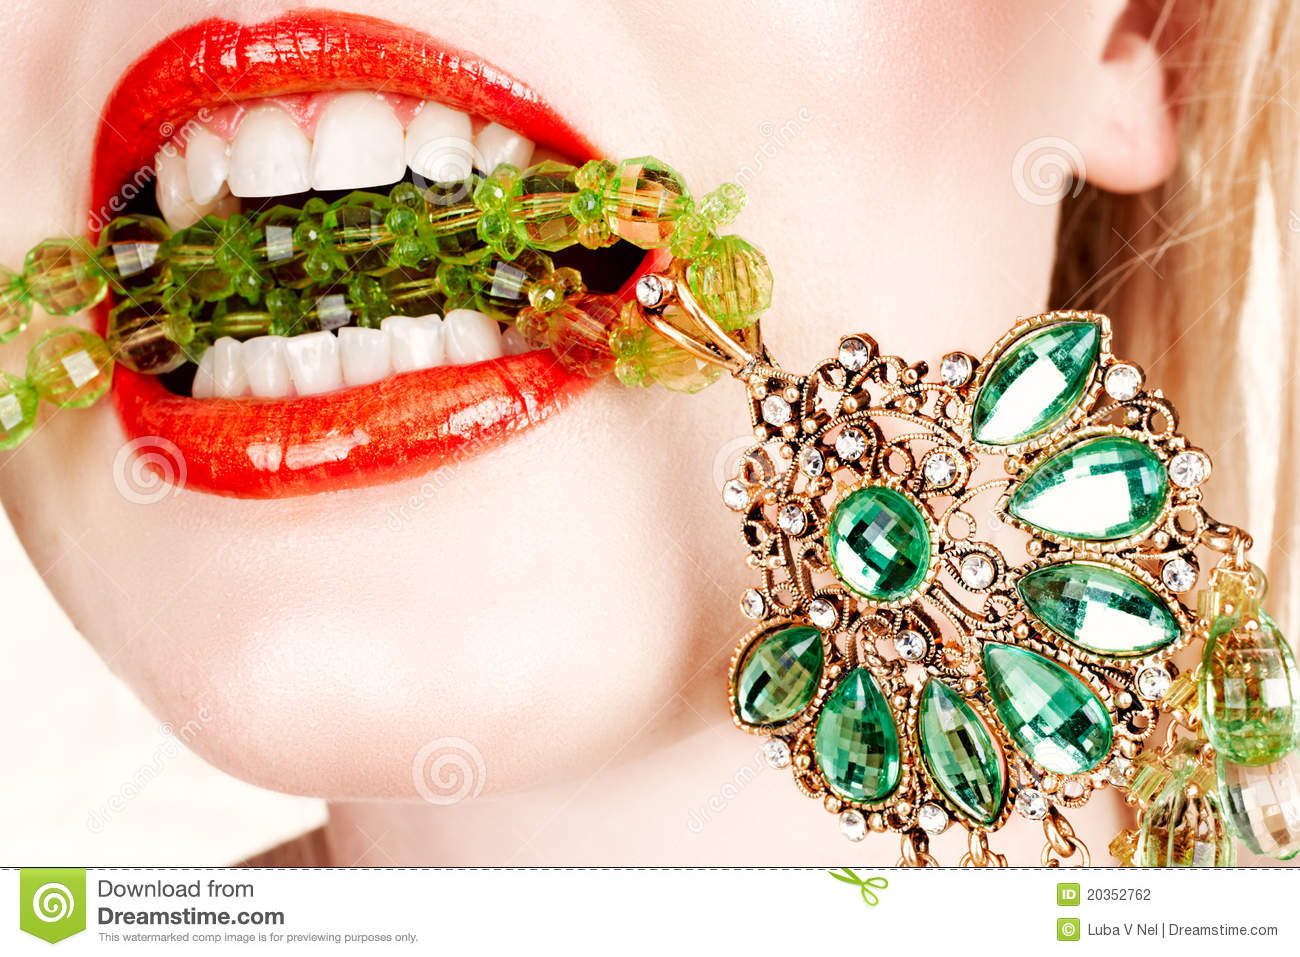 Woman lips with necklace